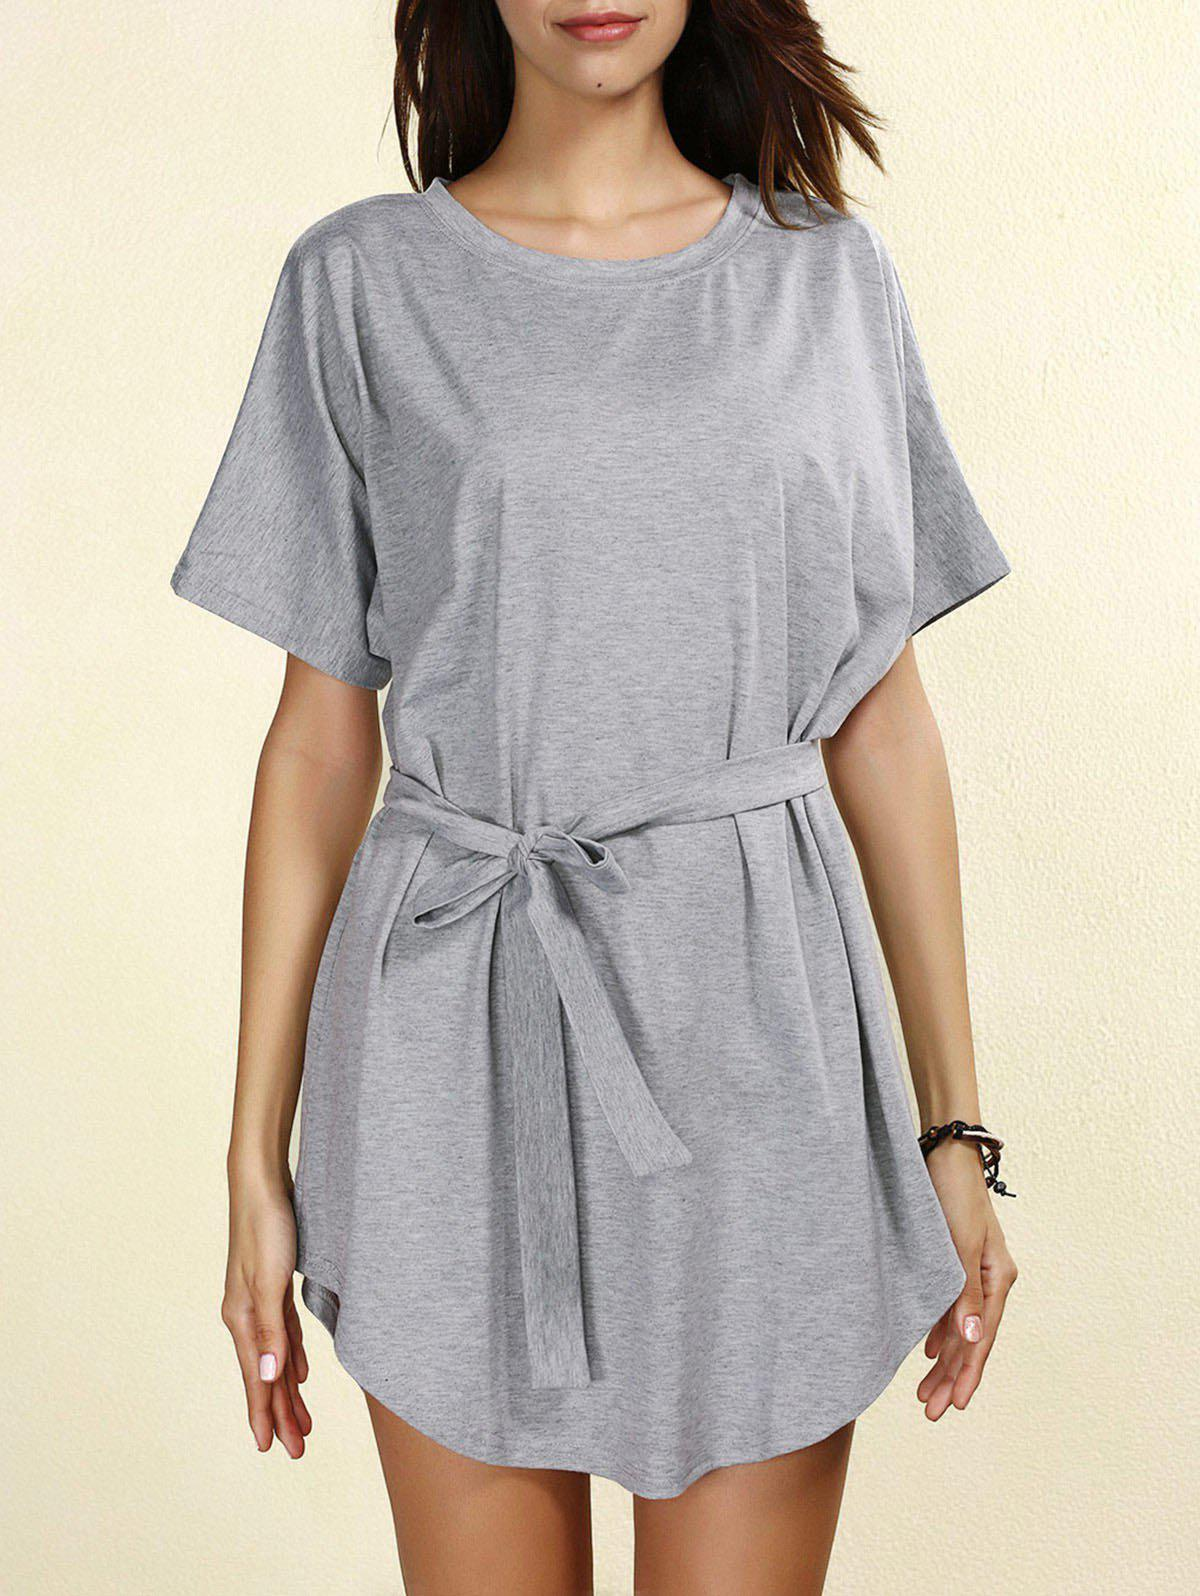 Casual Self-Tie Short Sleeve Round Neck Women's Dress - GRAY L